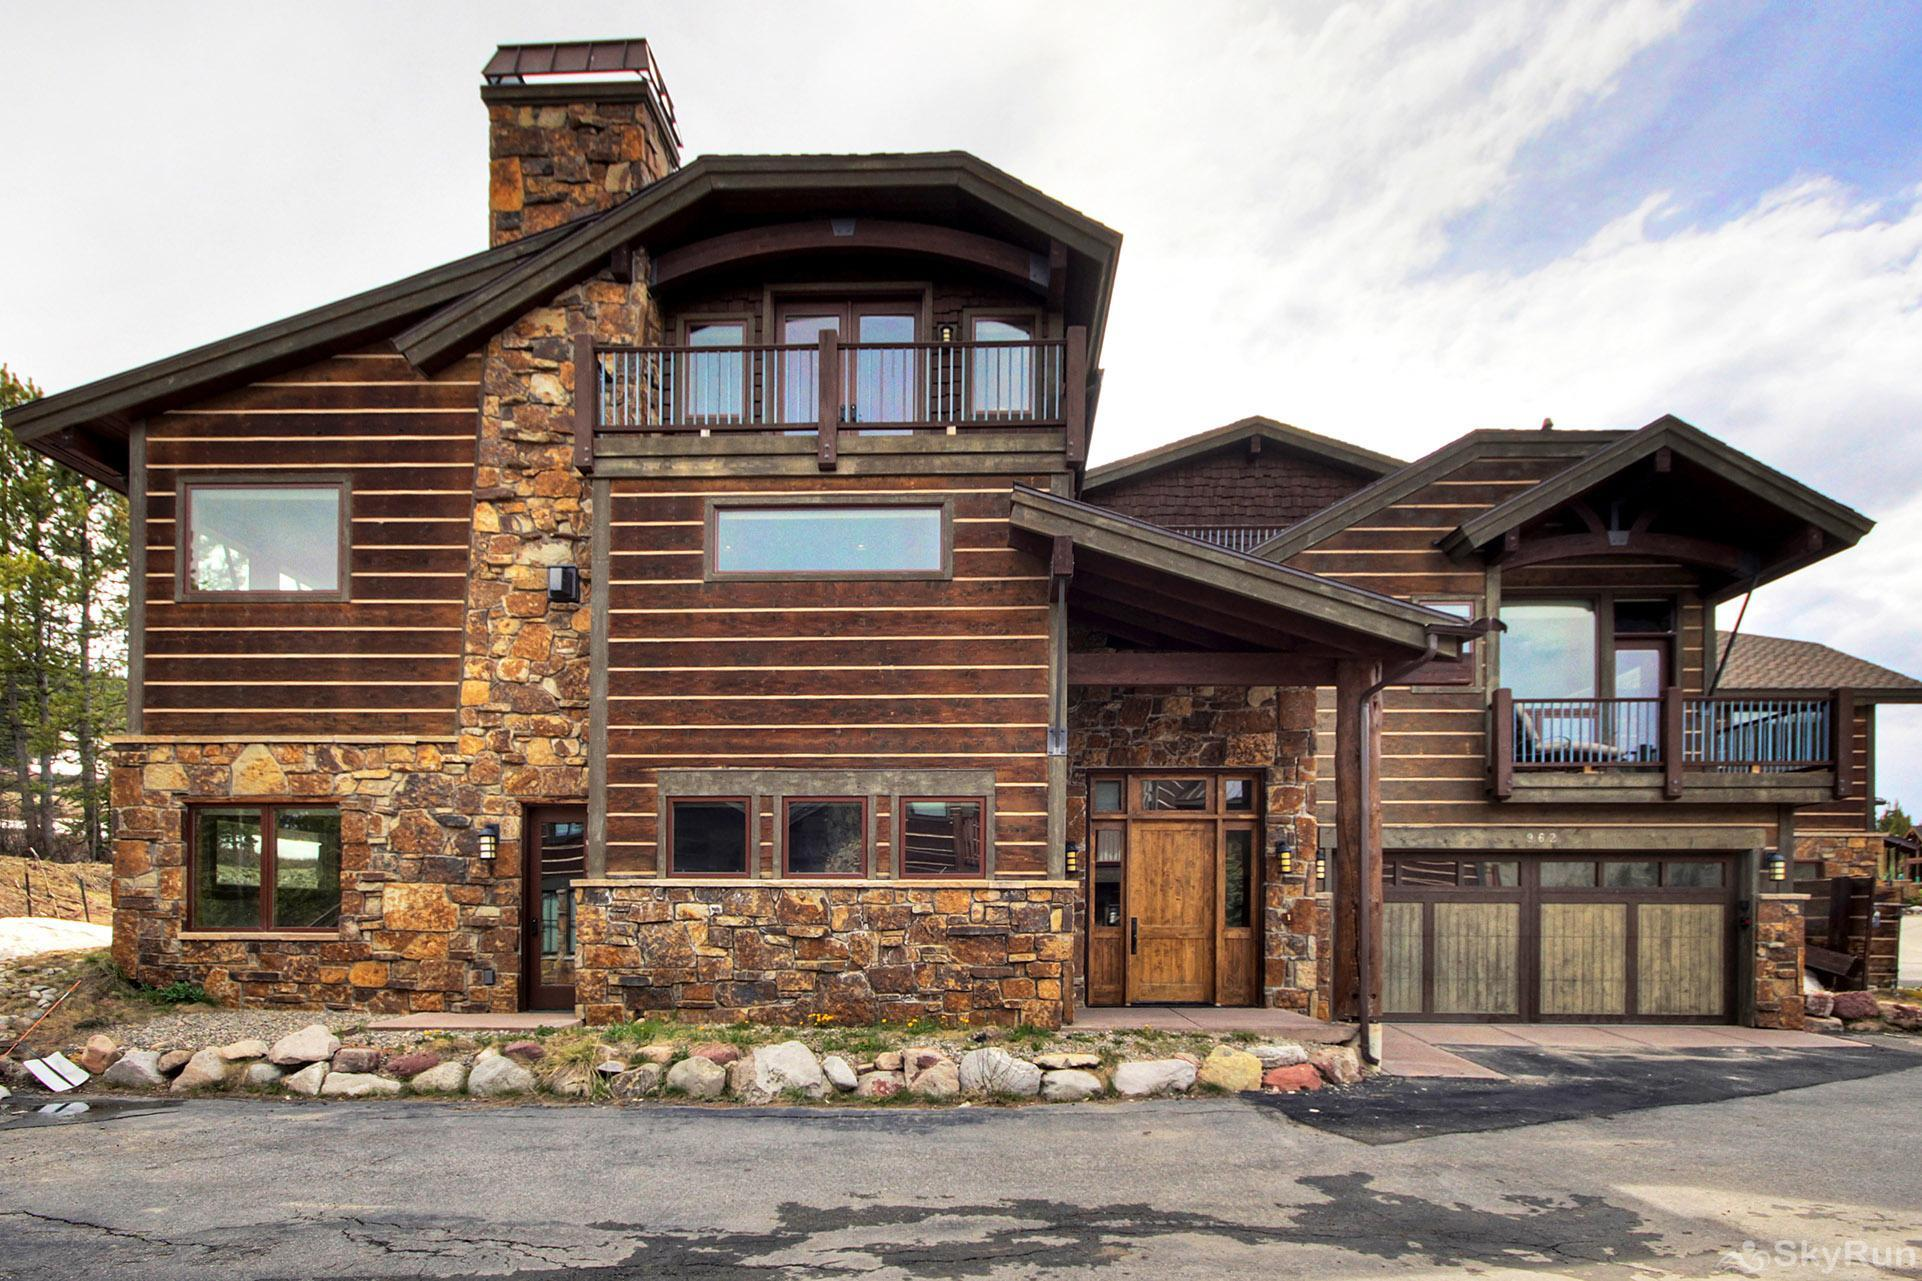 LR962 The Timberline at Lewis Ranch Exterior